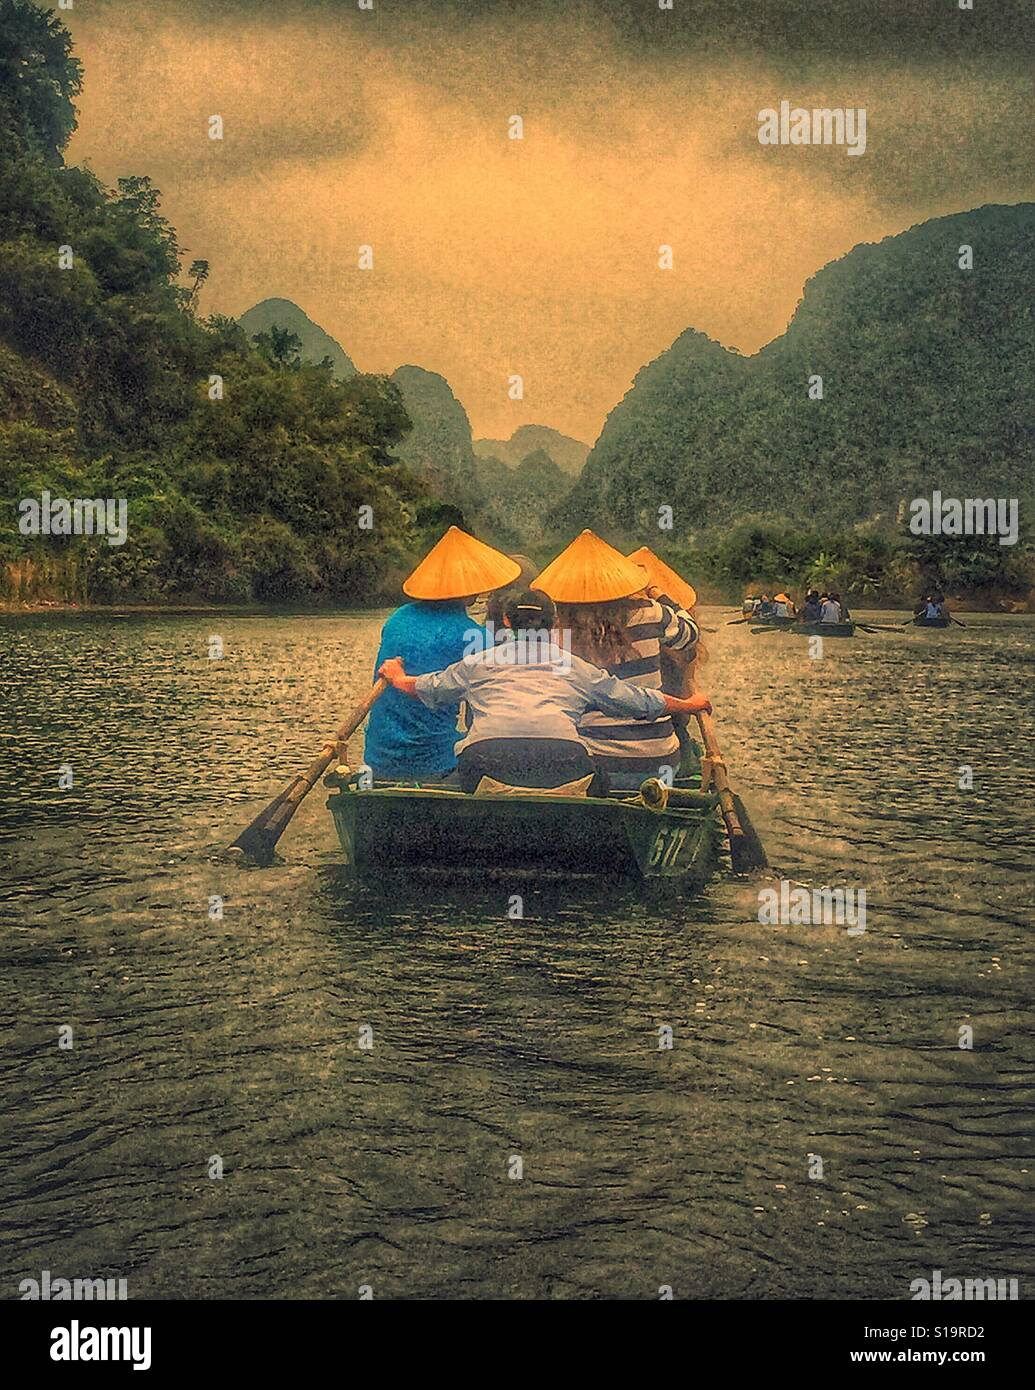 Boat ride in Vietnam - Stock Image